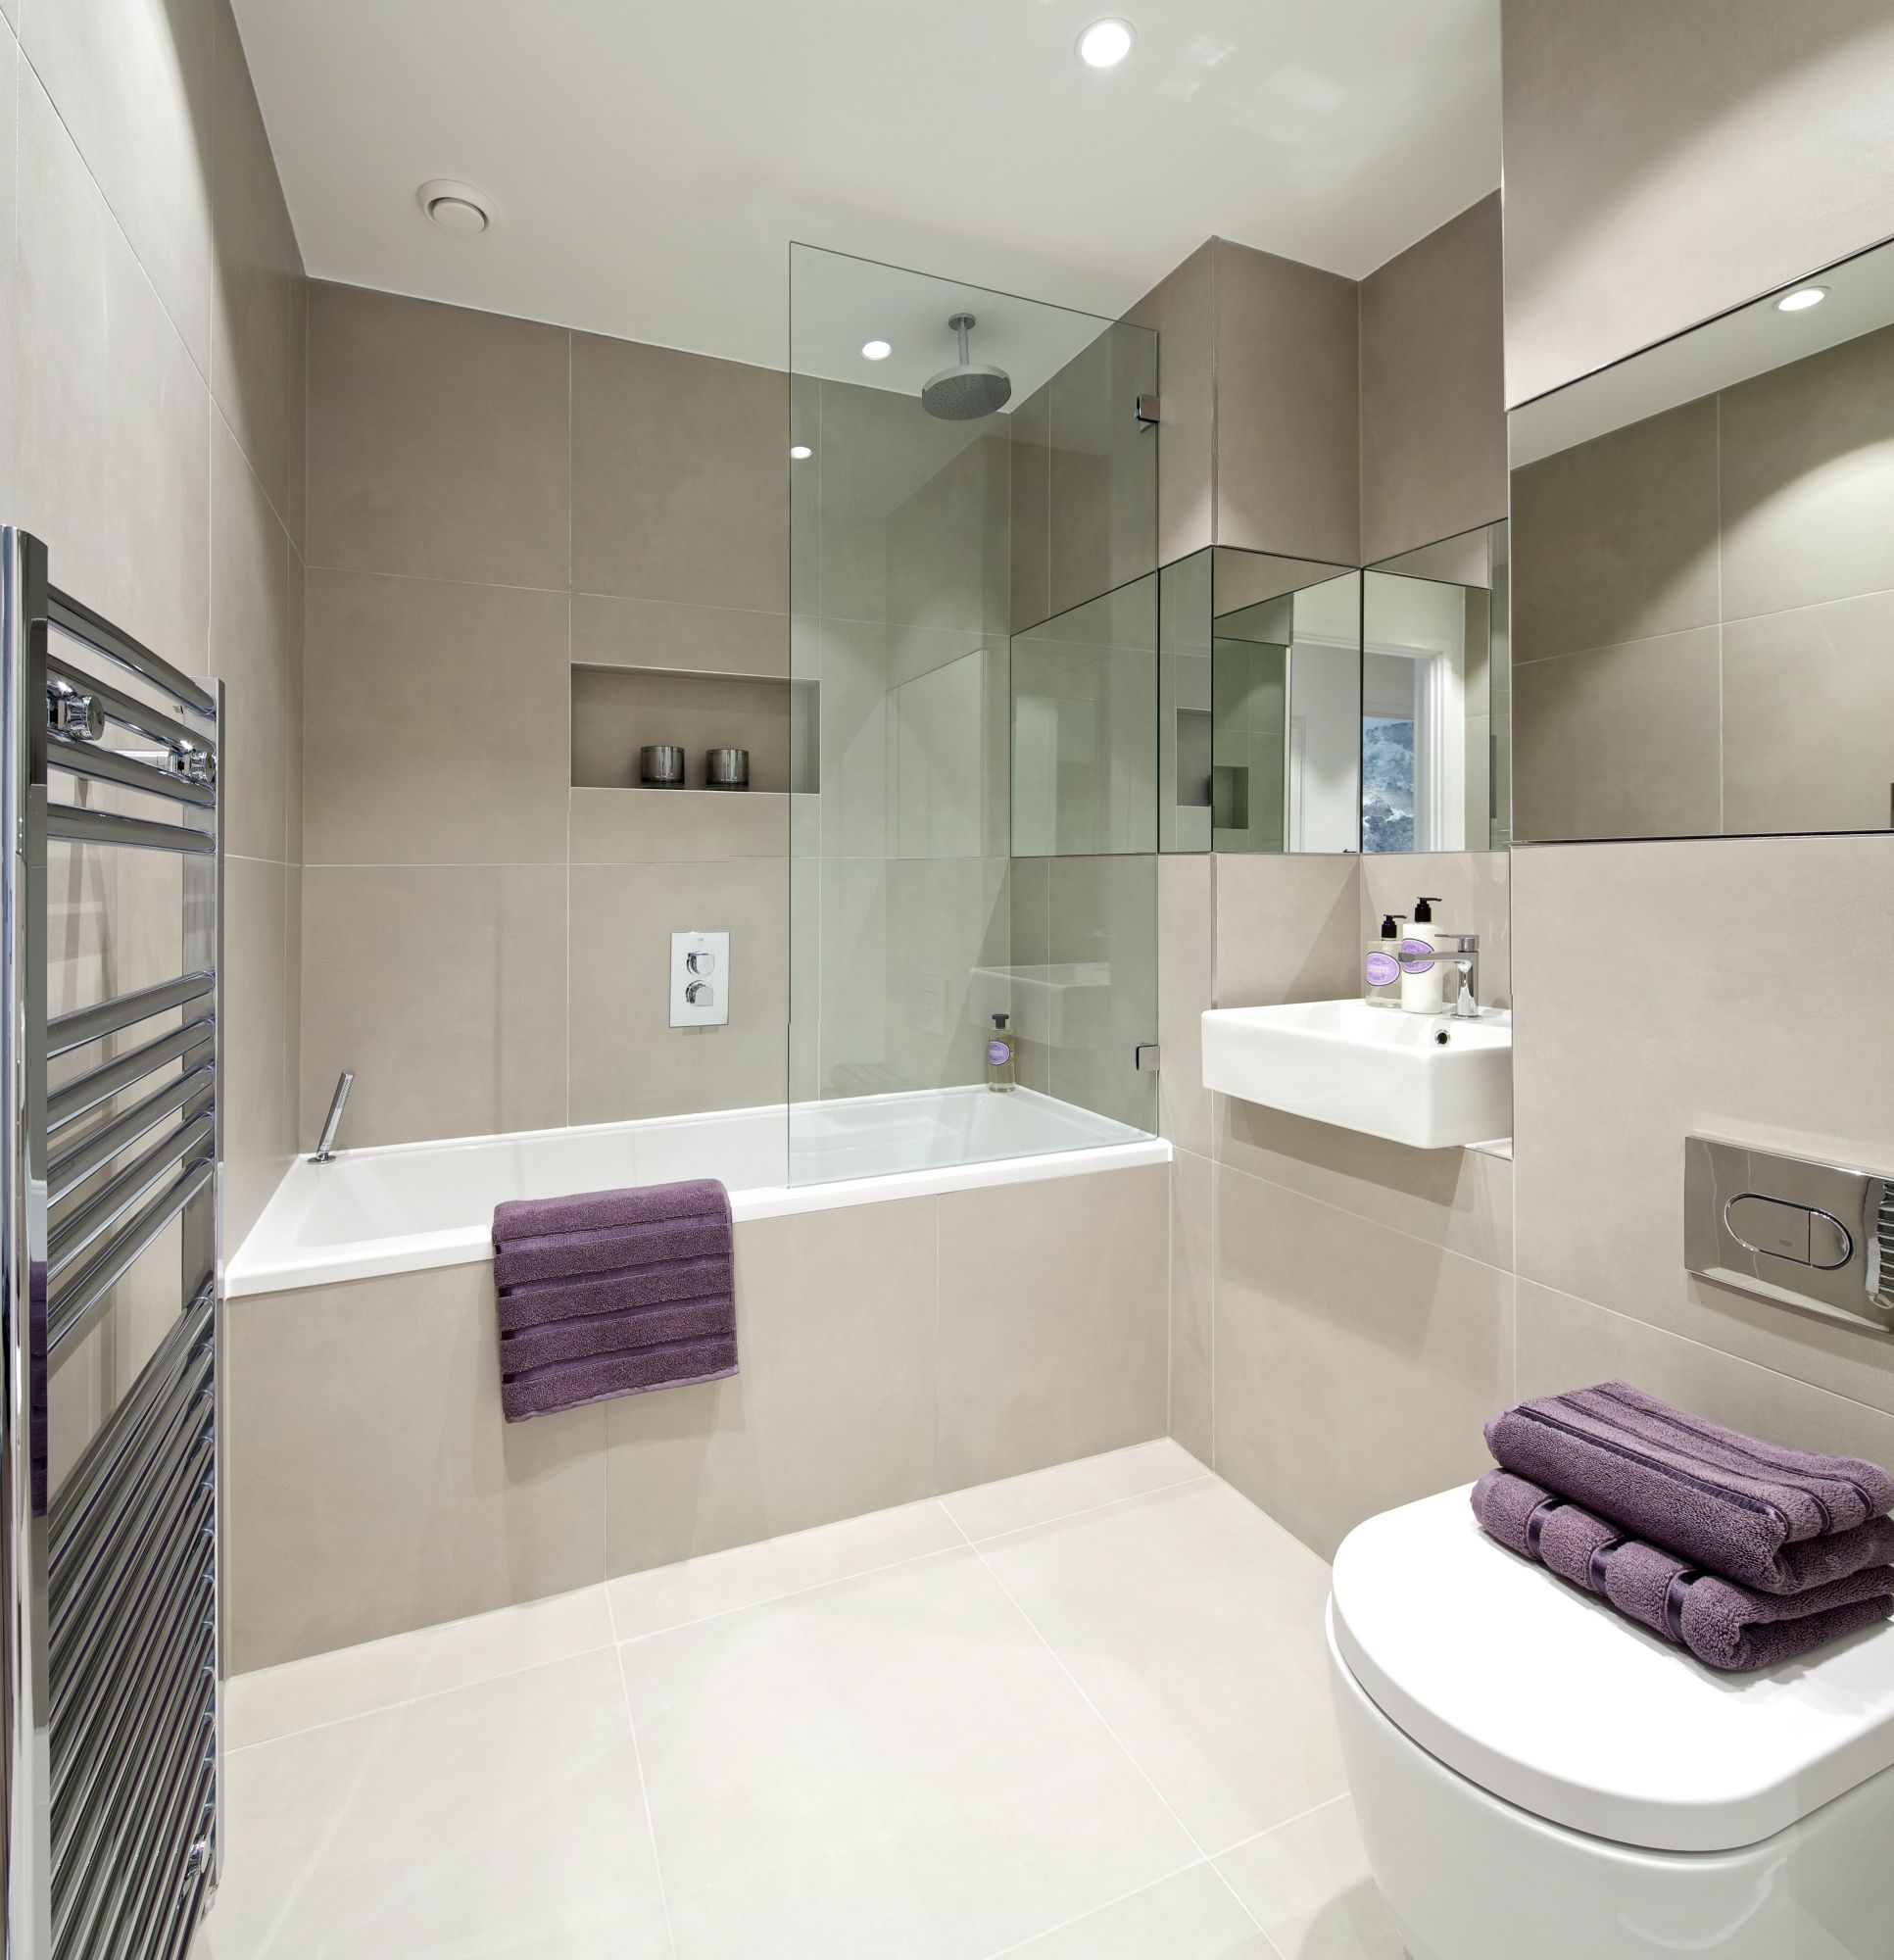 Home bathroom designs - Stunning Home Interiors Bathroom Another Stunning Show Home Design By Suna Interior Design